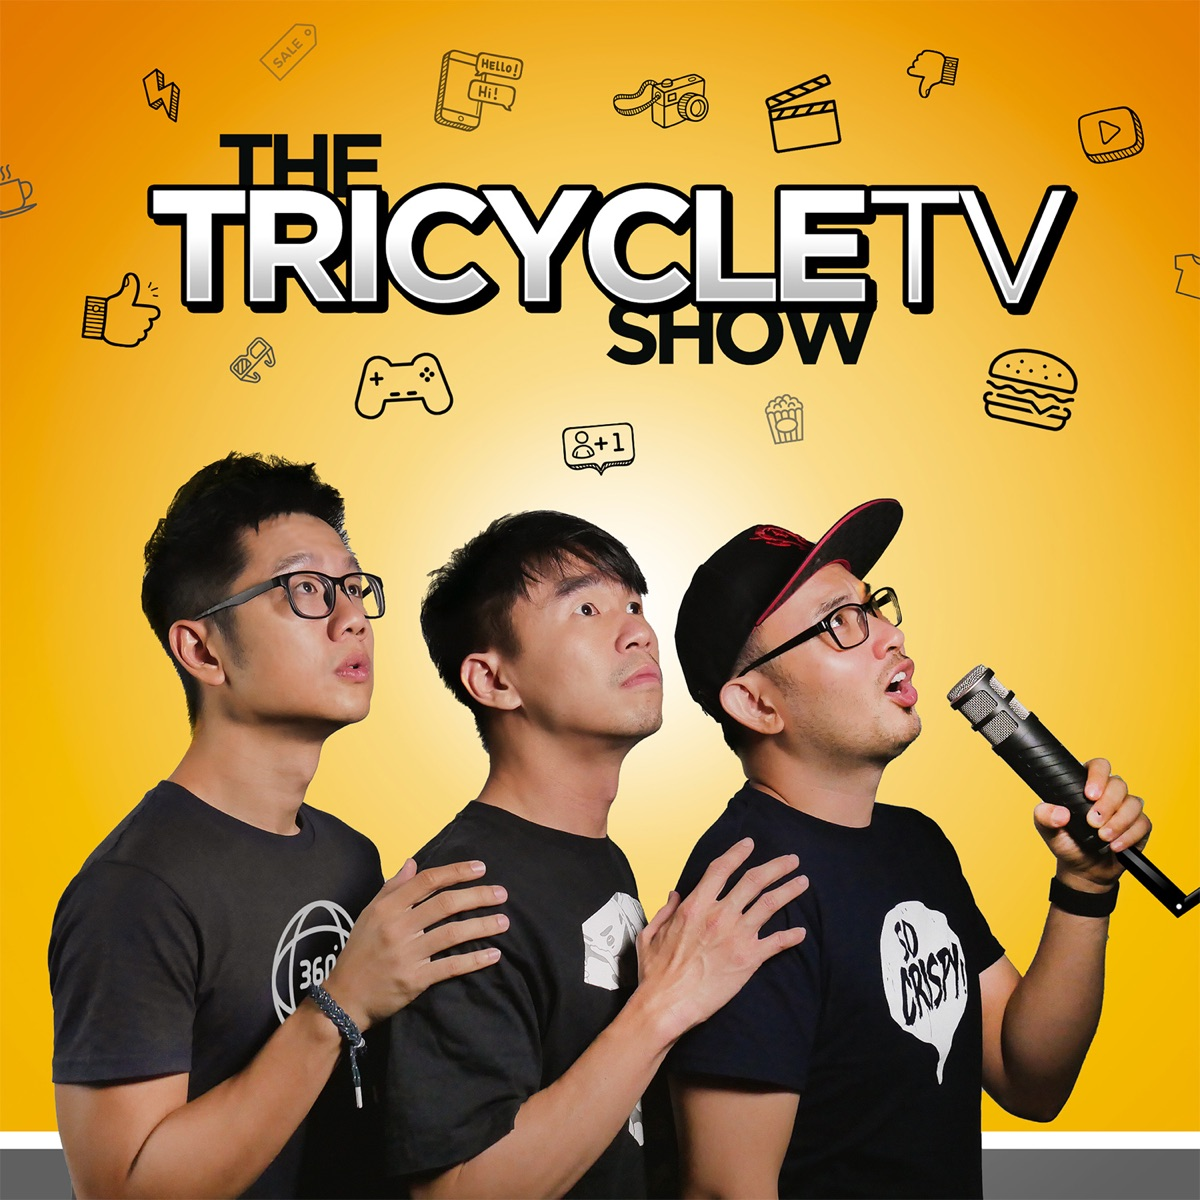 The TricycleTV Show